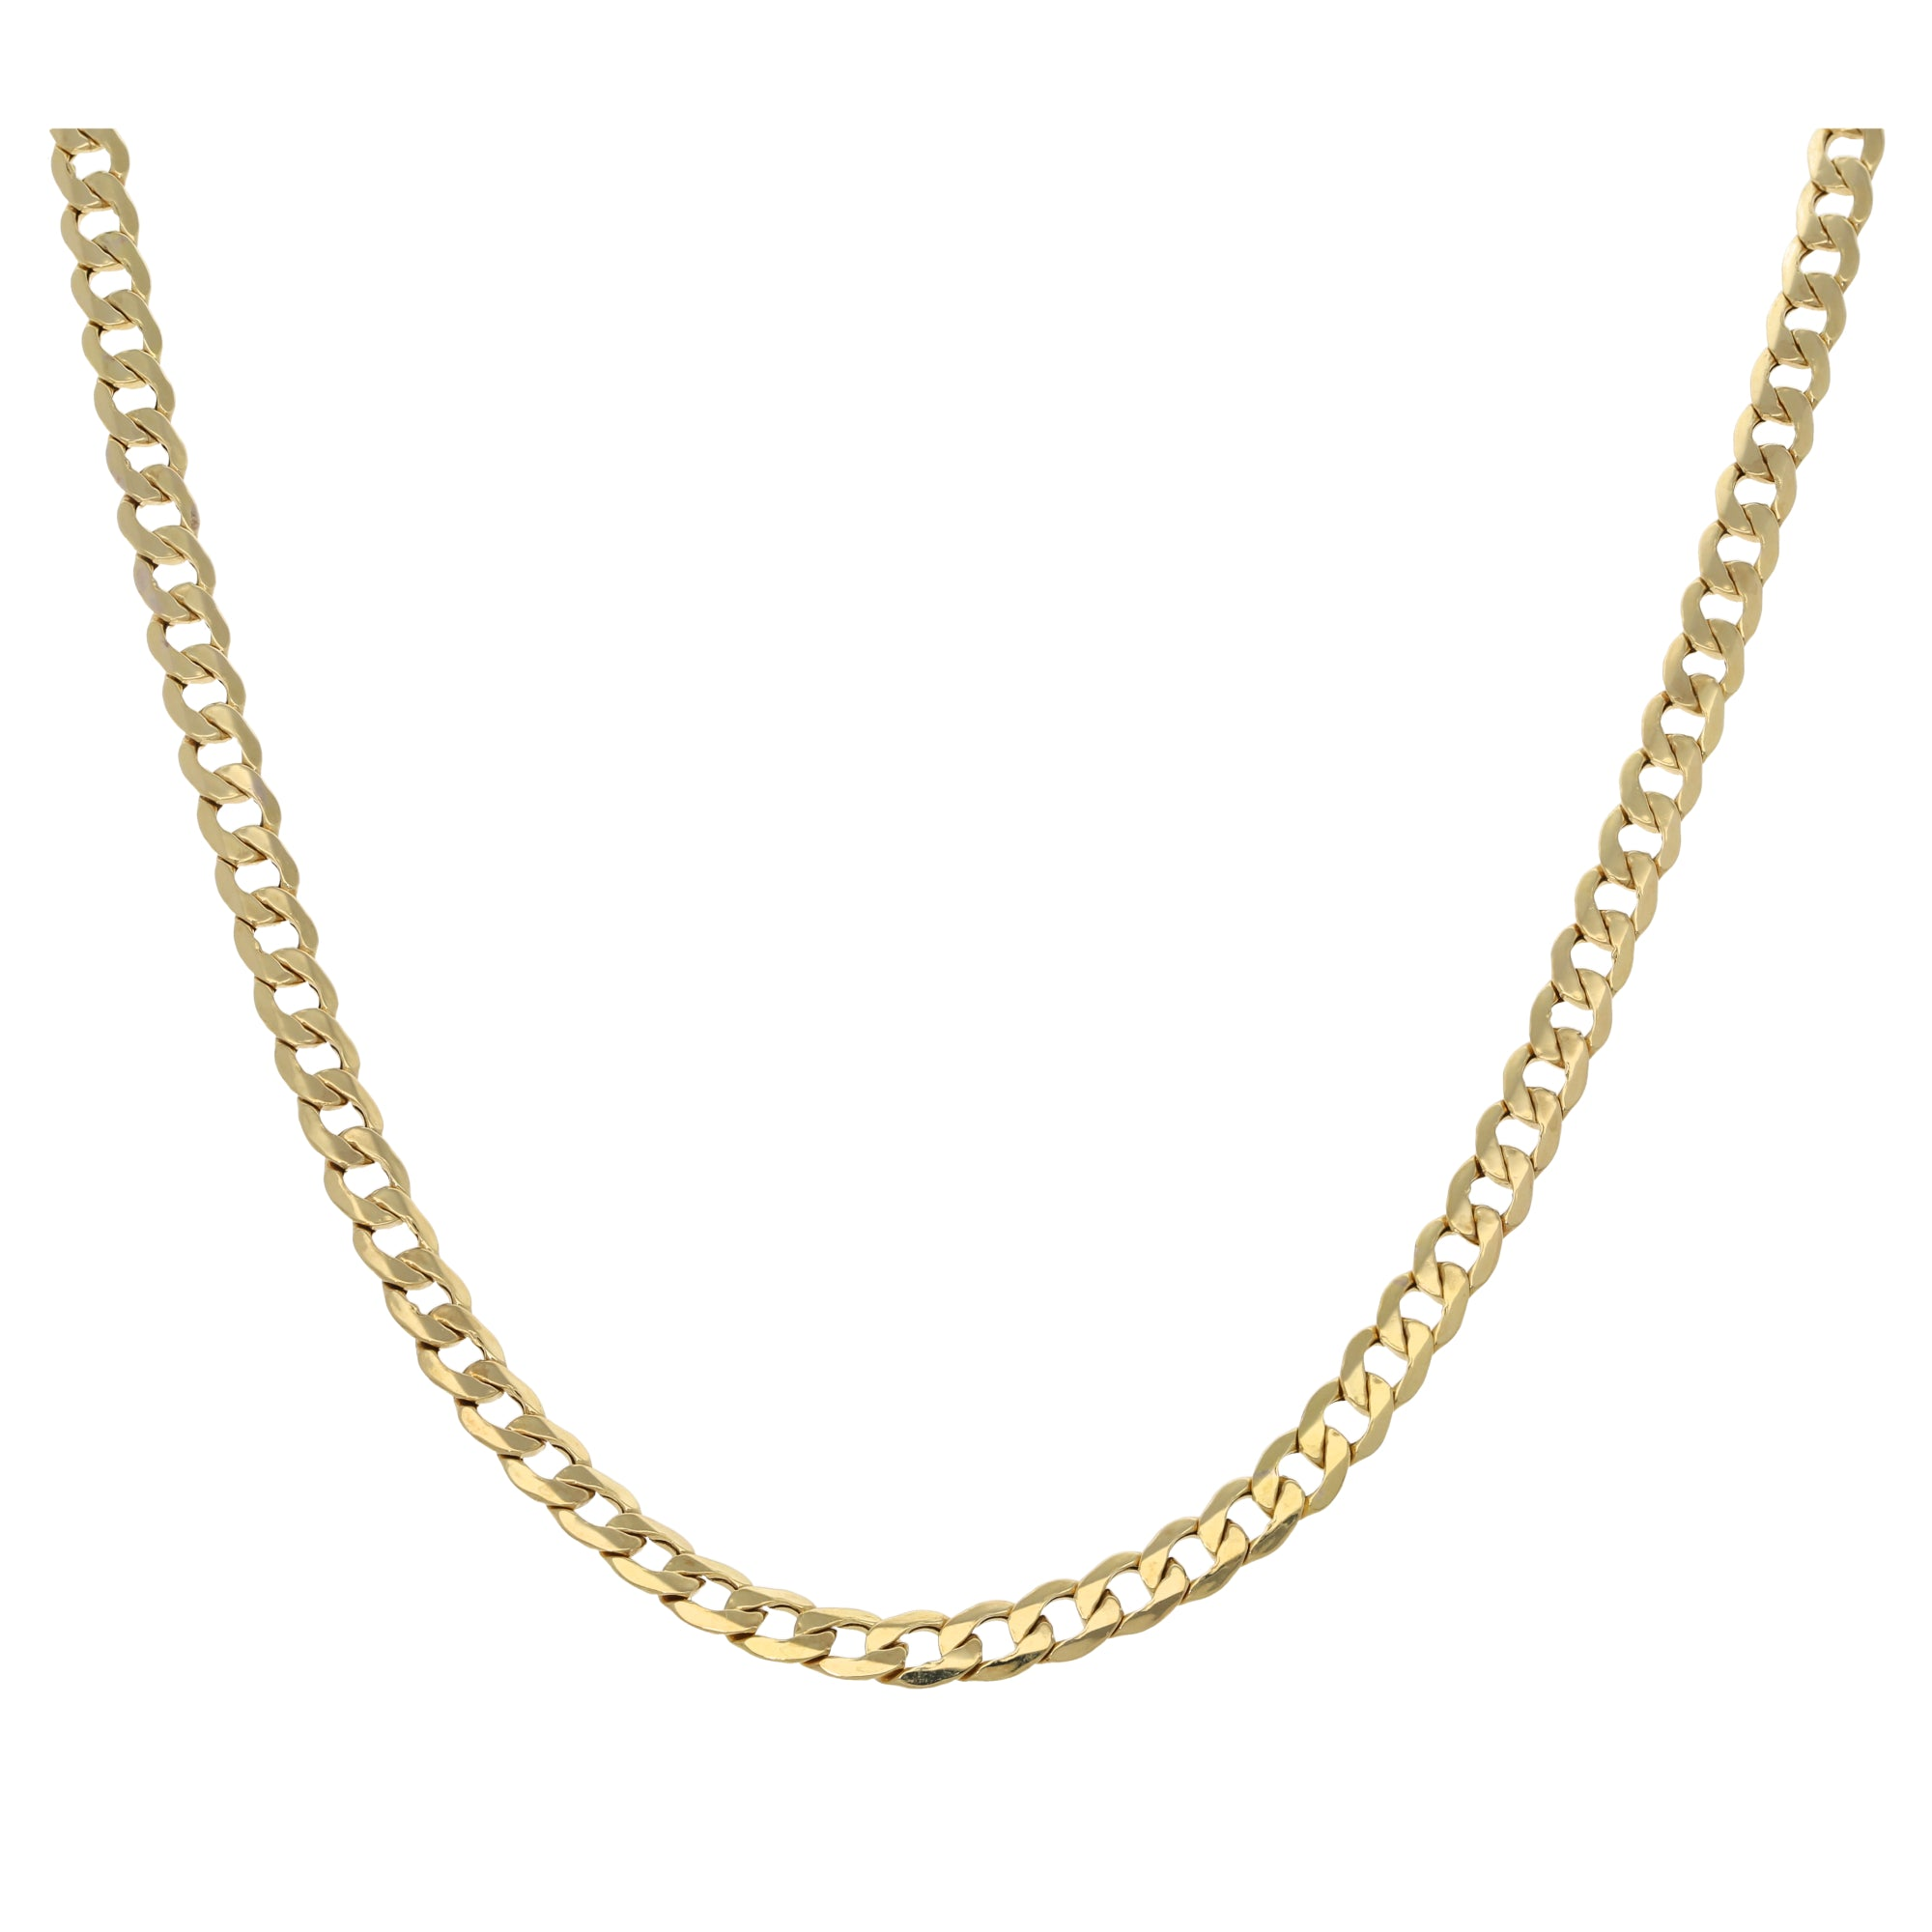 9ct Gold Ladies Curb Chain 24